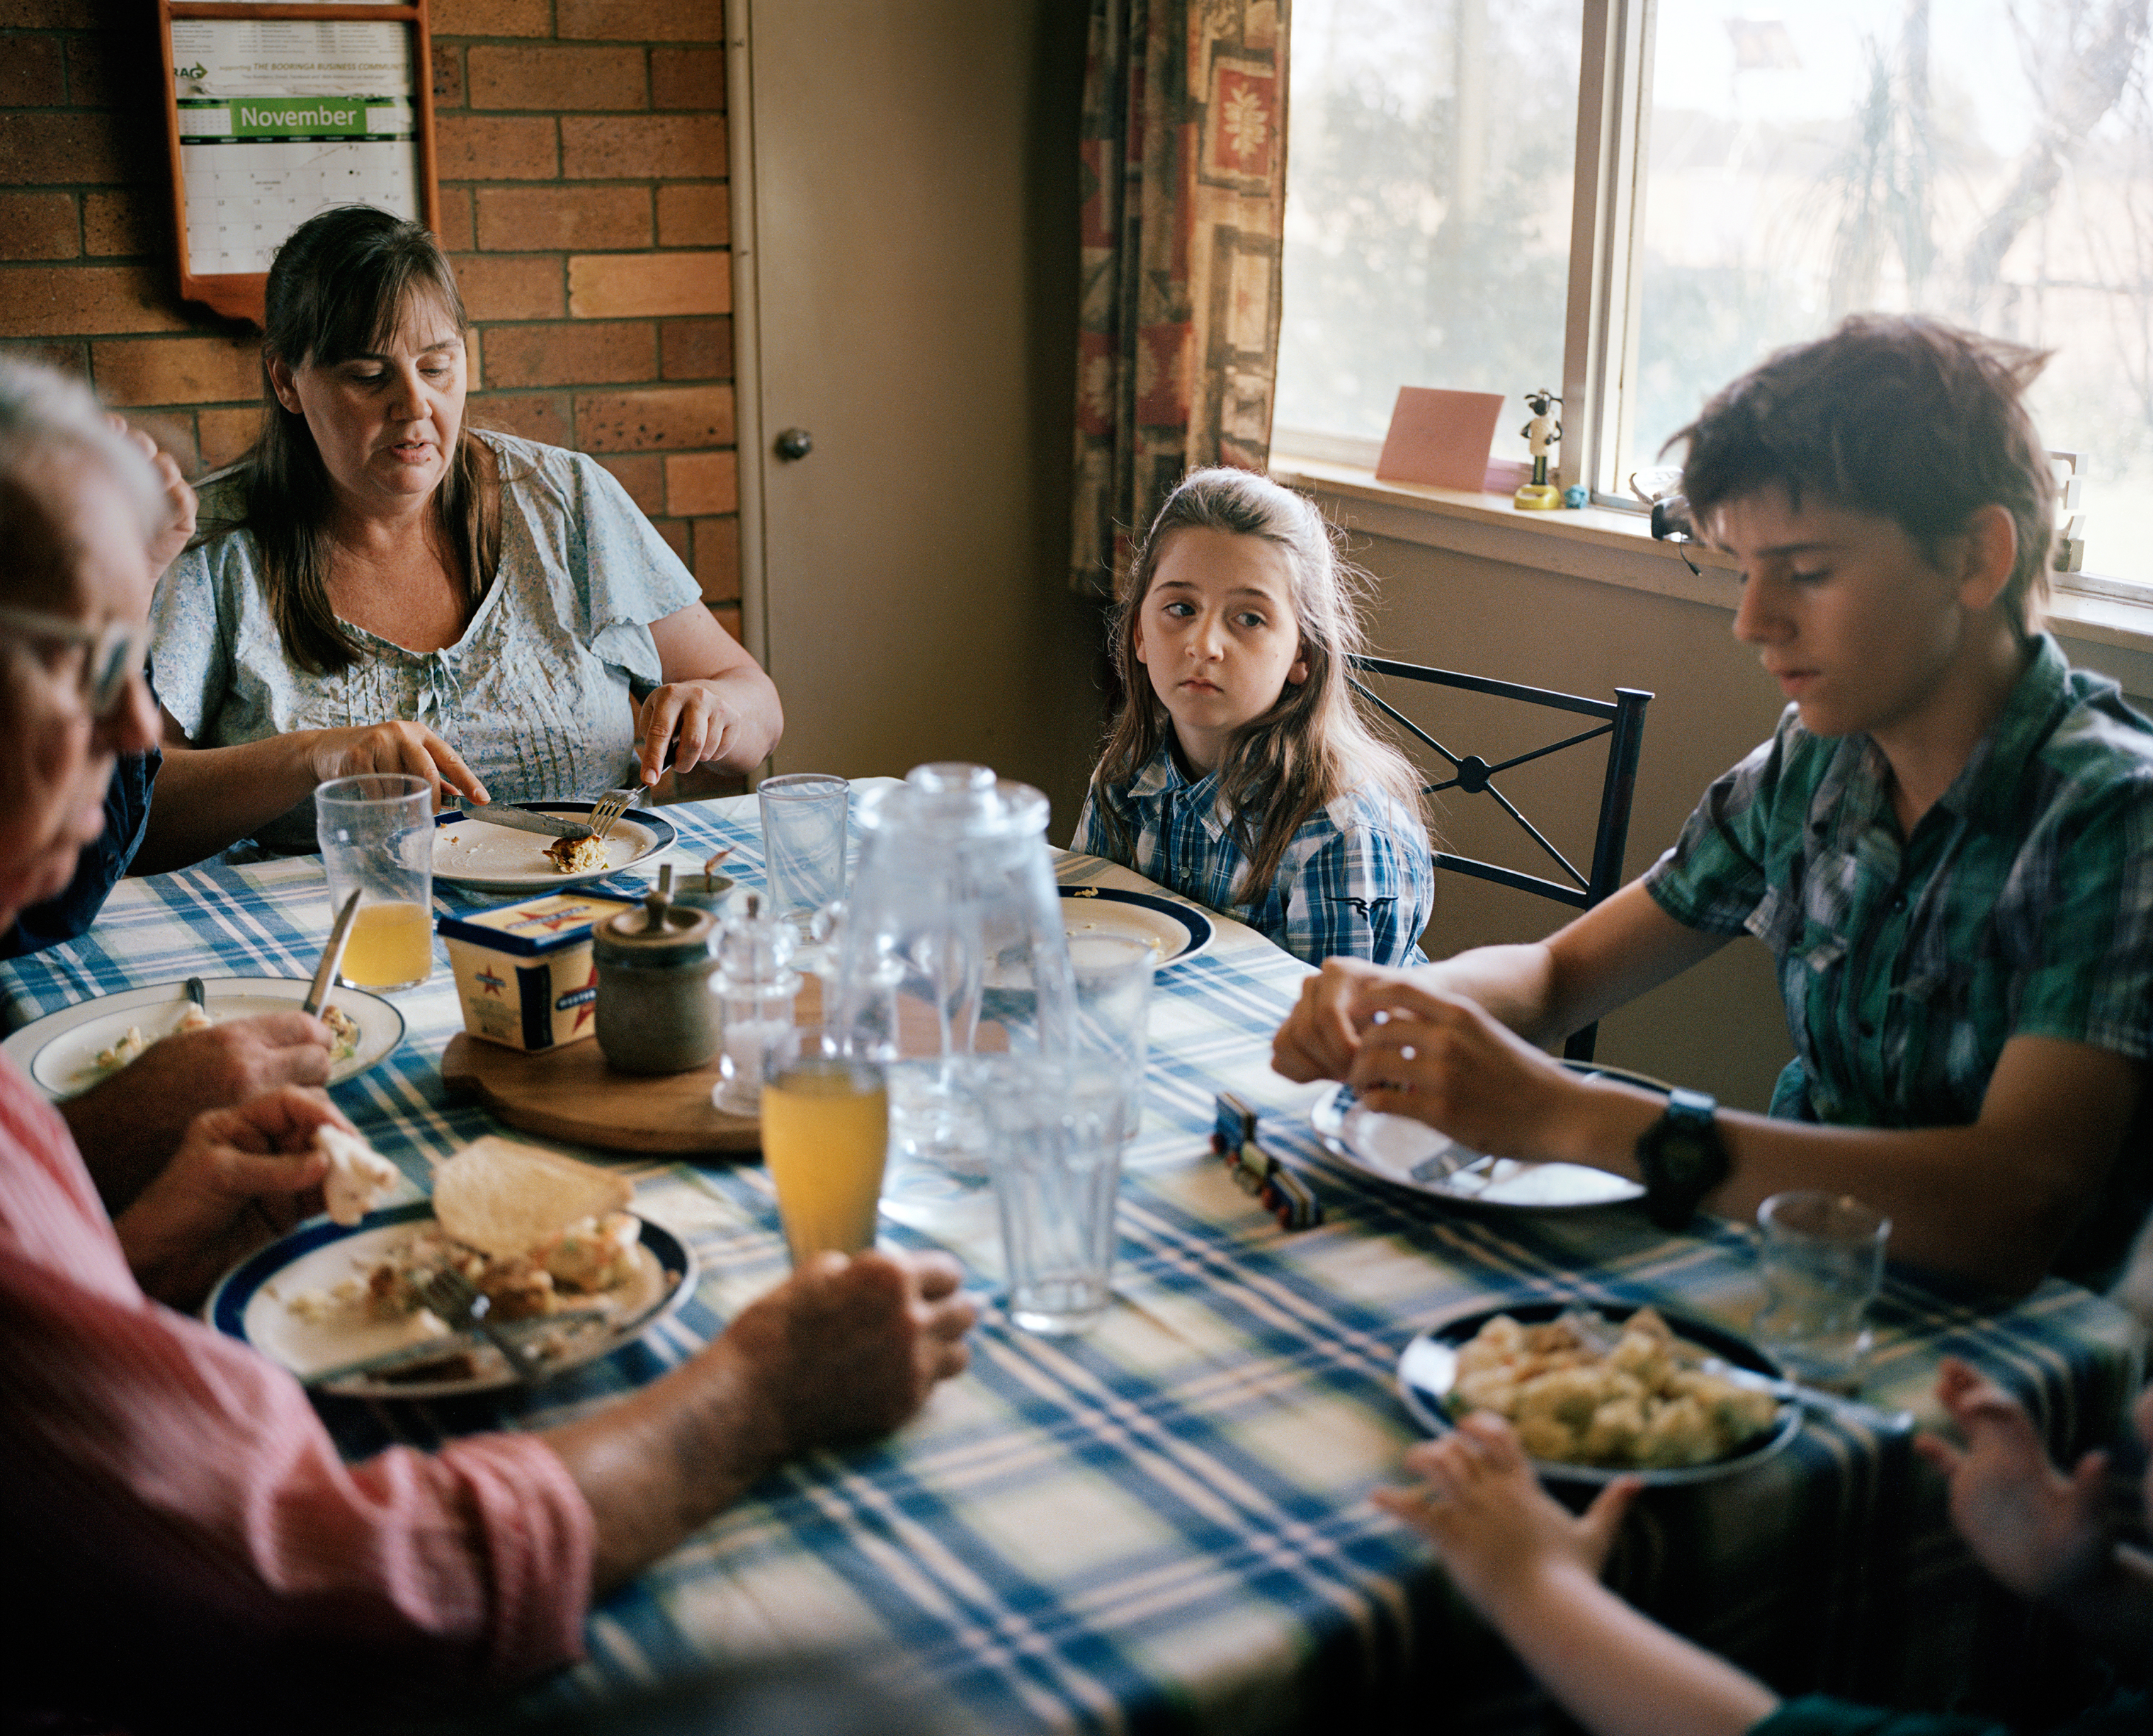 Farmers Kent Morris and Sam Cormack eat lunch with their children and his mother at Kandimulla Property in Queensland in November. Cormack has three children from a previous relationship — Grace, 9; Frank, 14; and Nicholas, 12 — and a son, Luke, 3, with Morris.